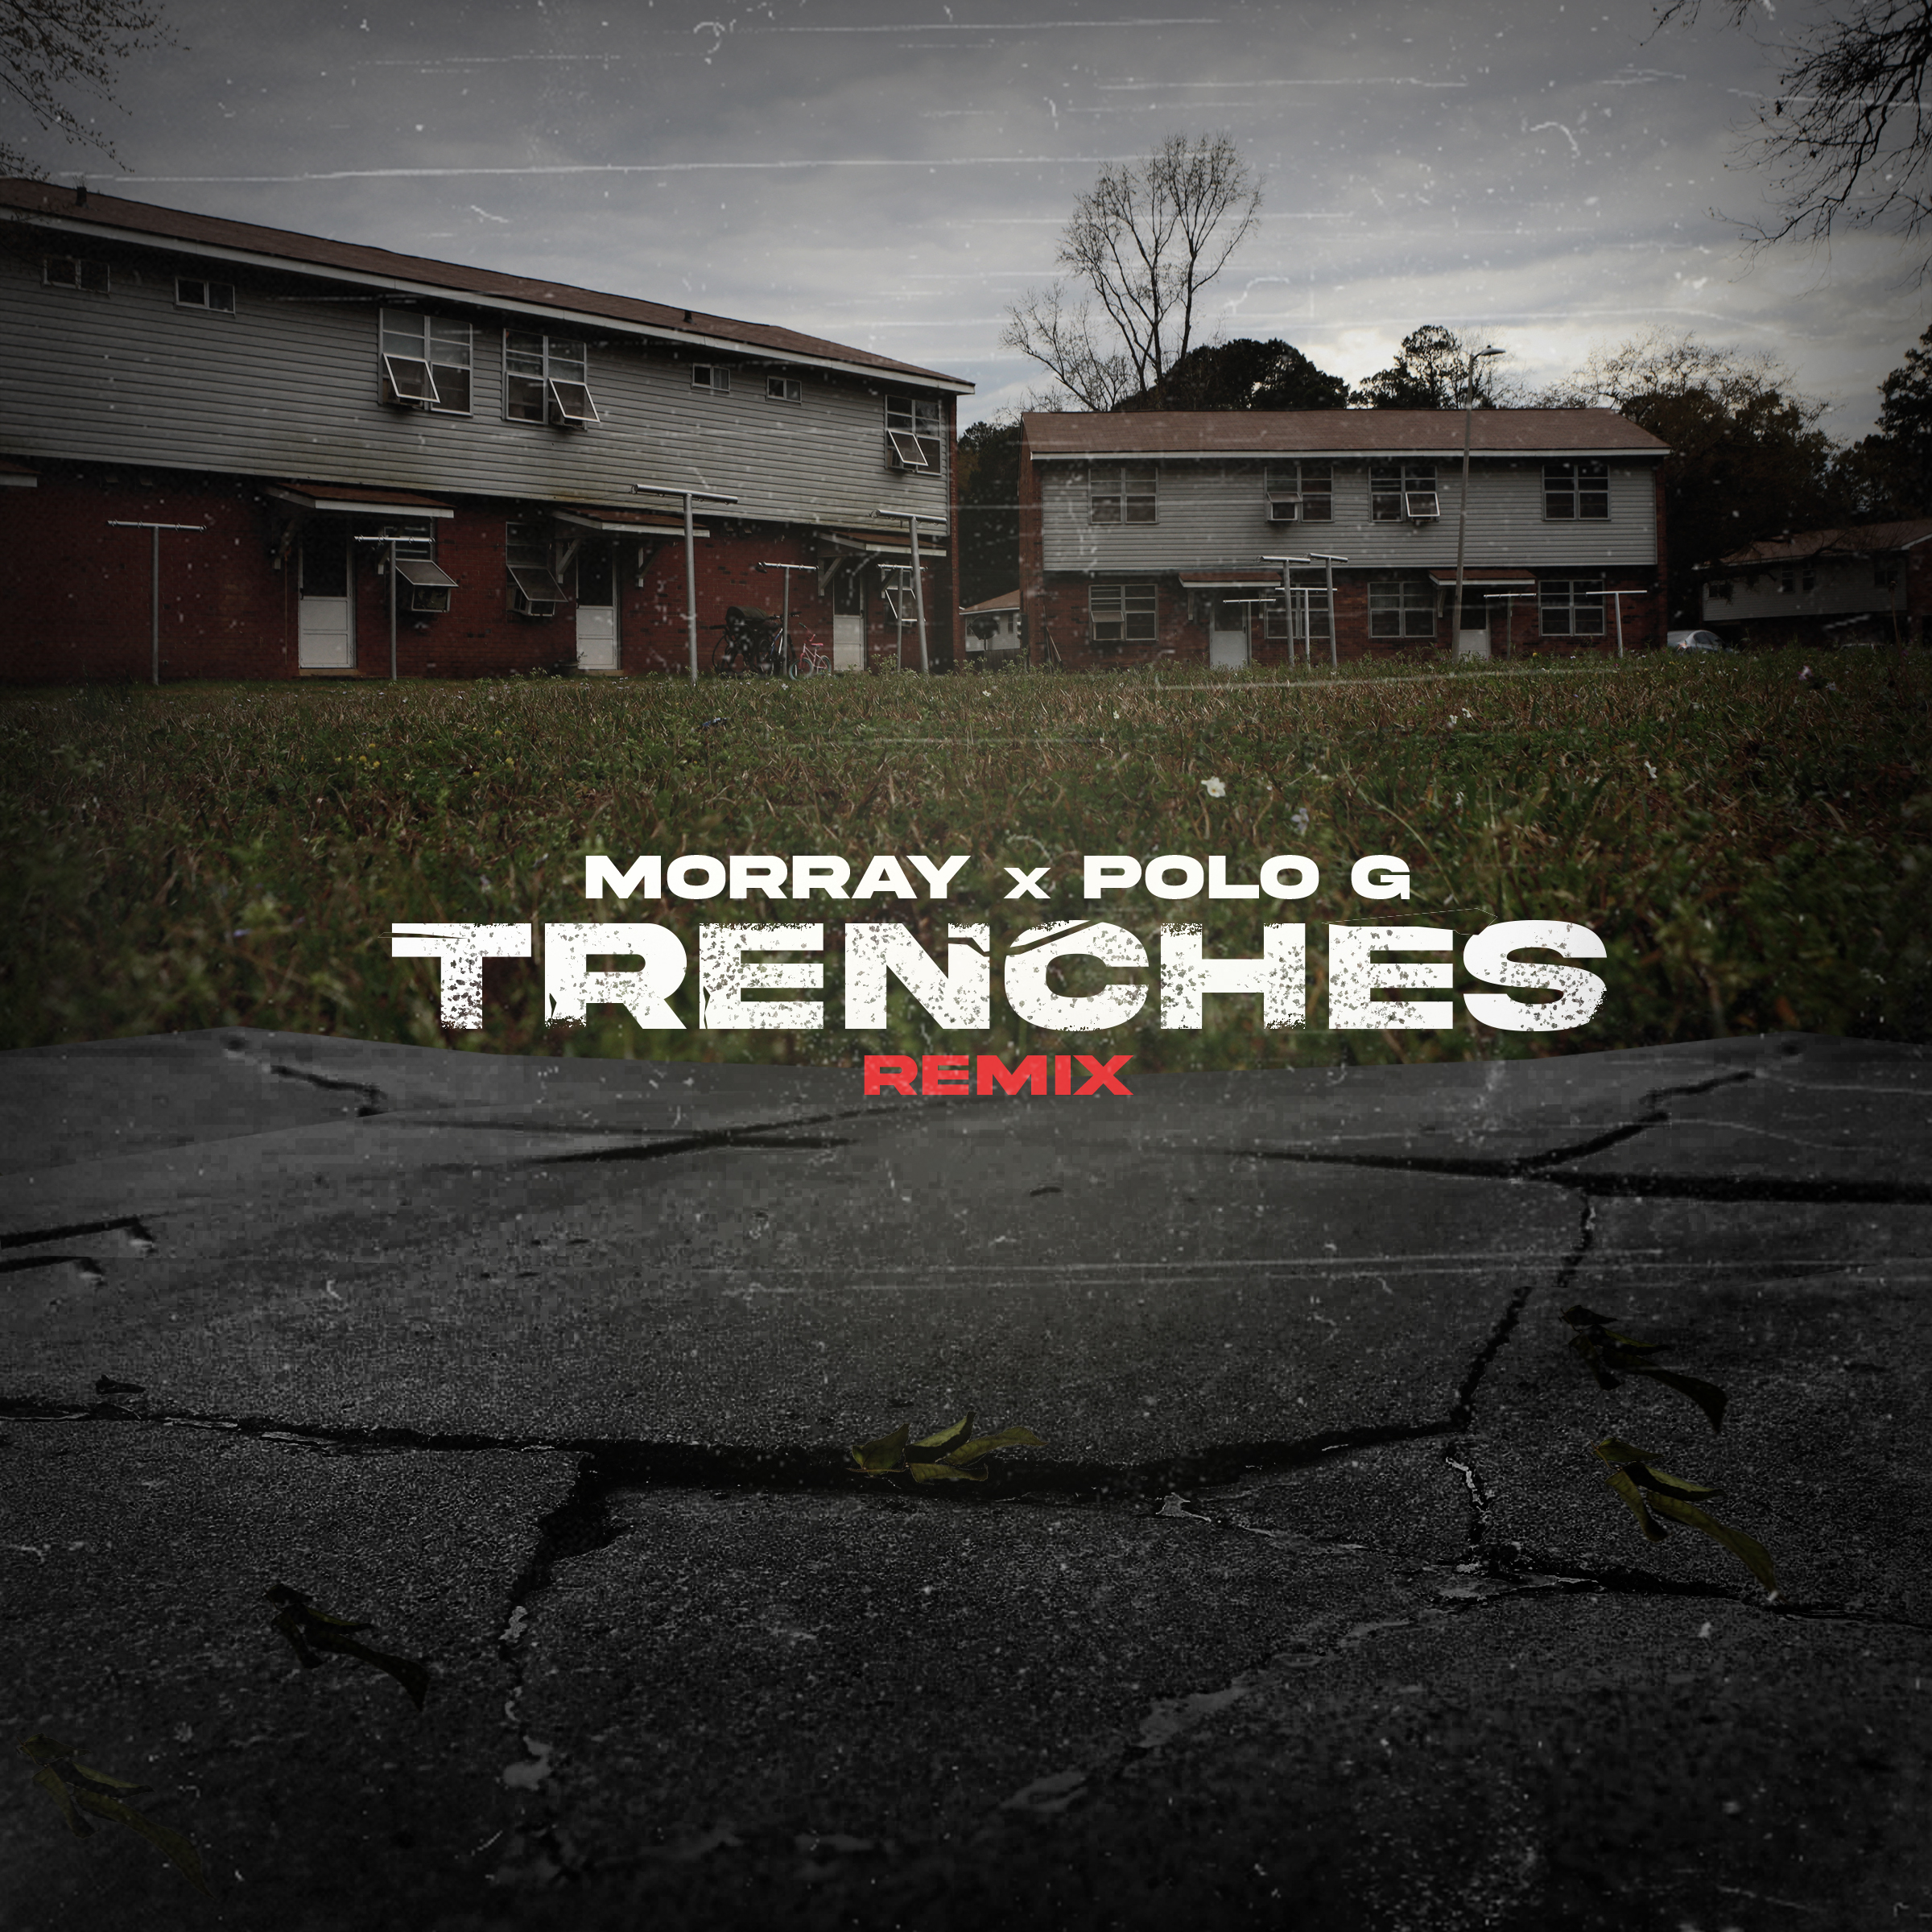 Morray - Trenches Remix (Artwork)